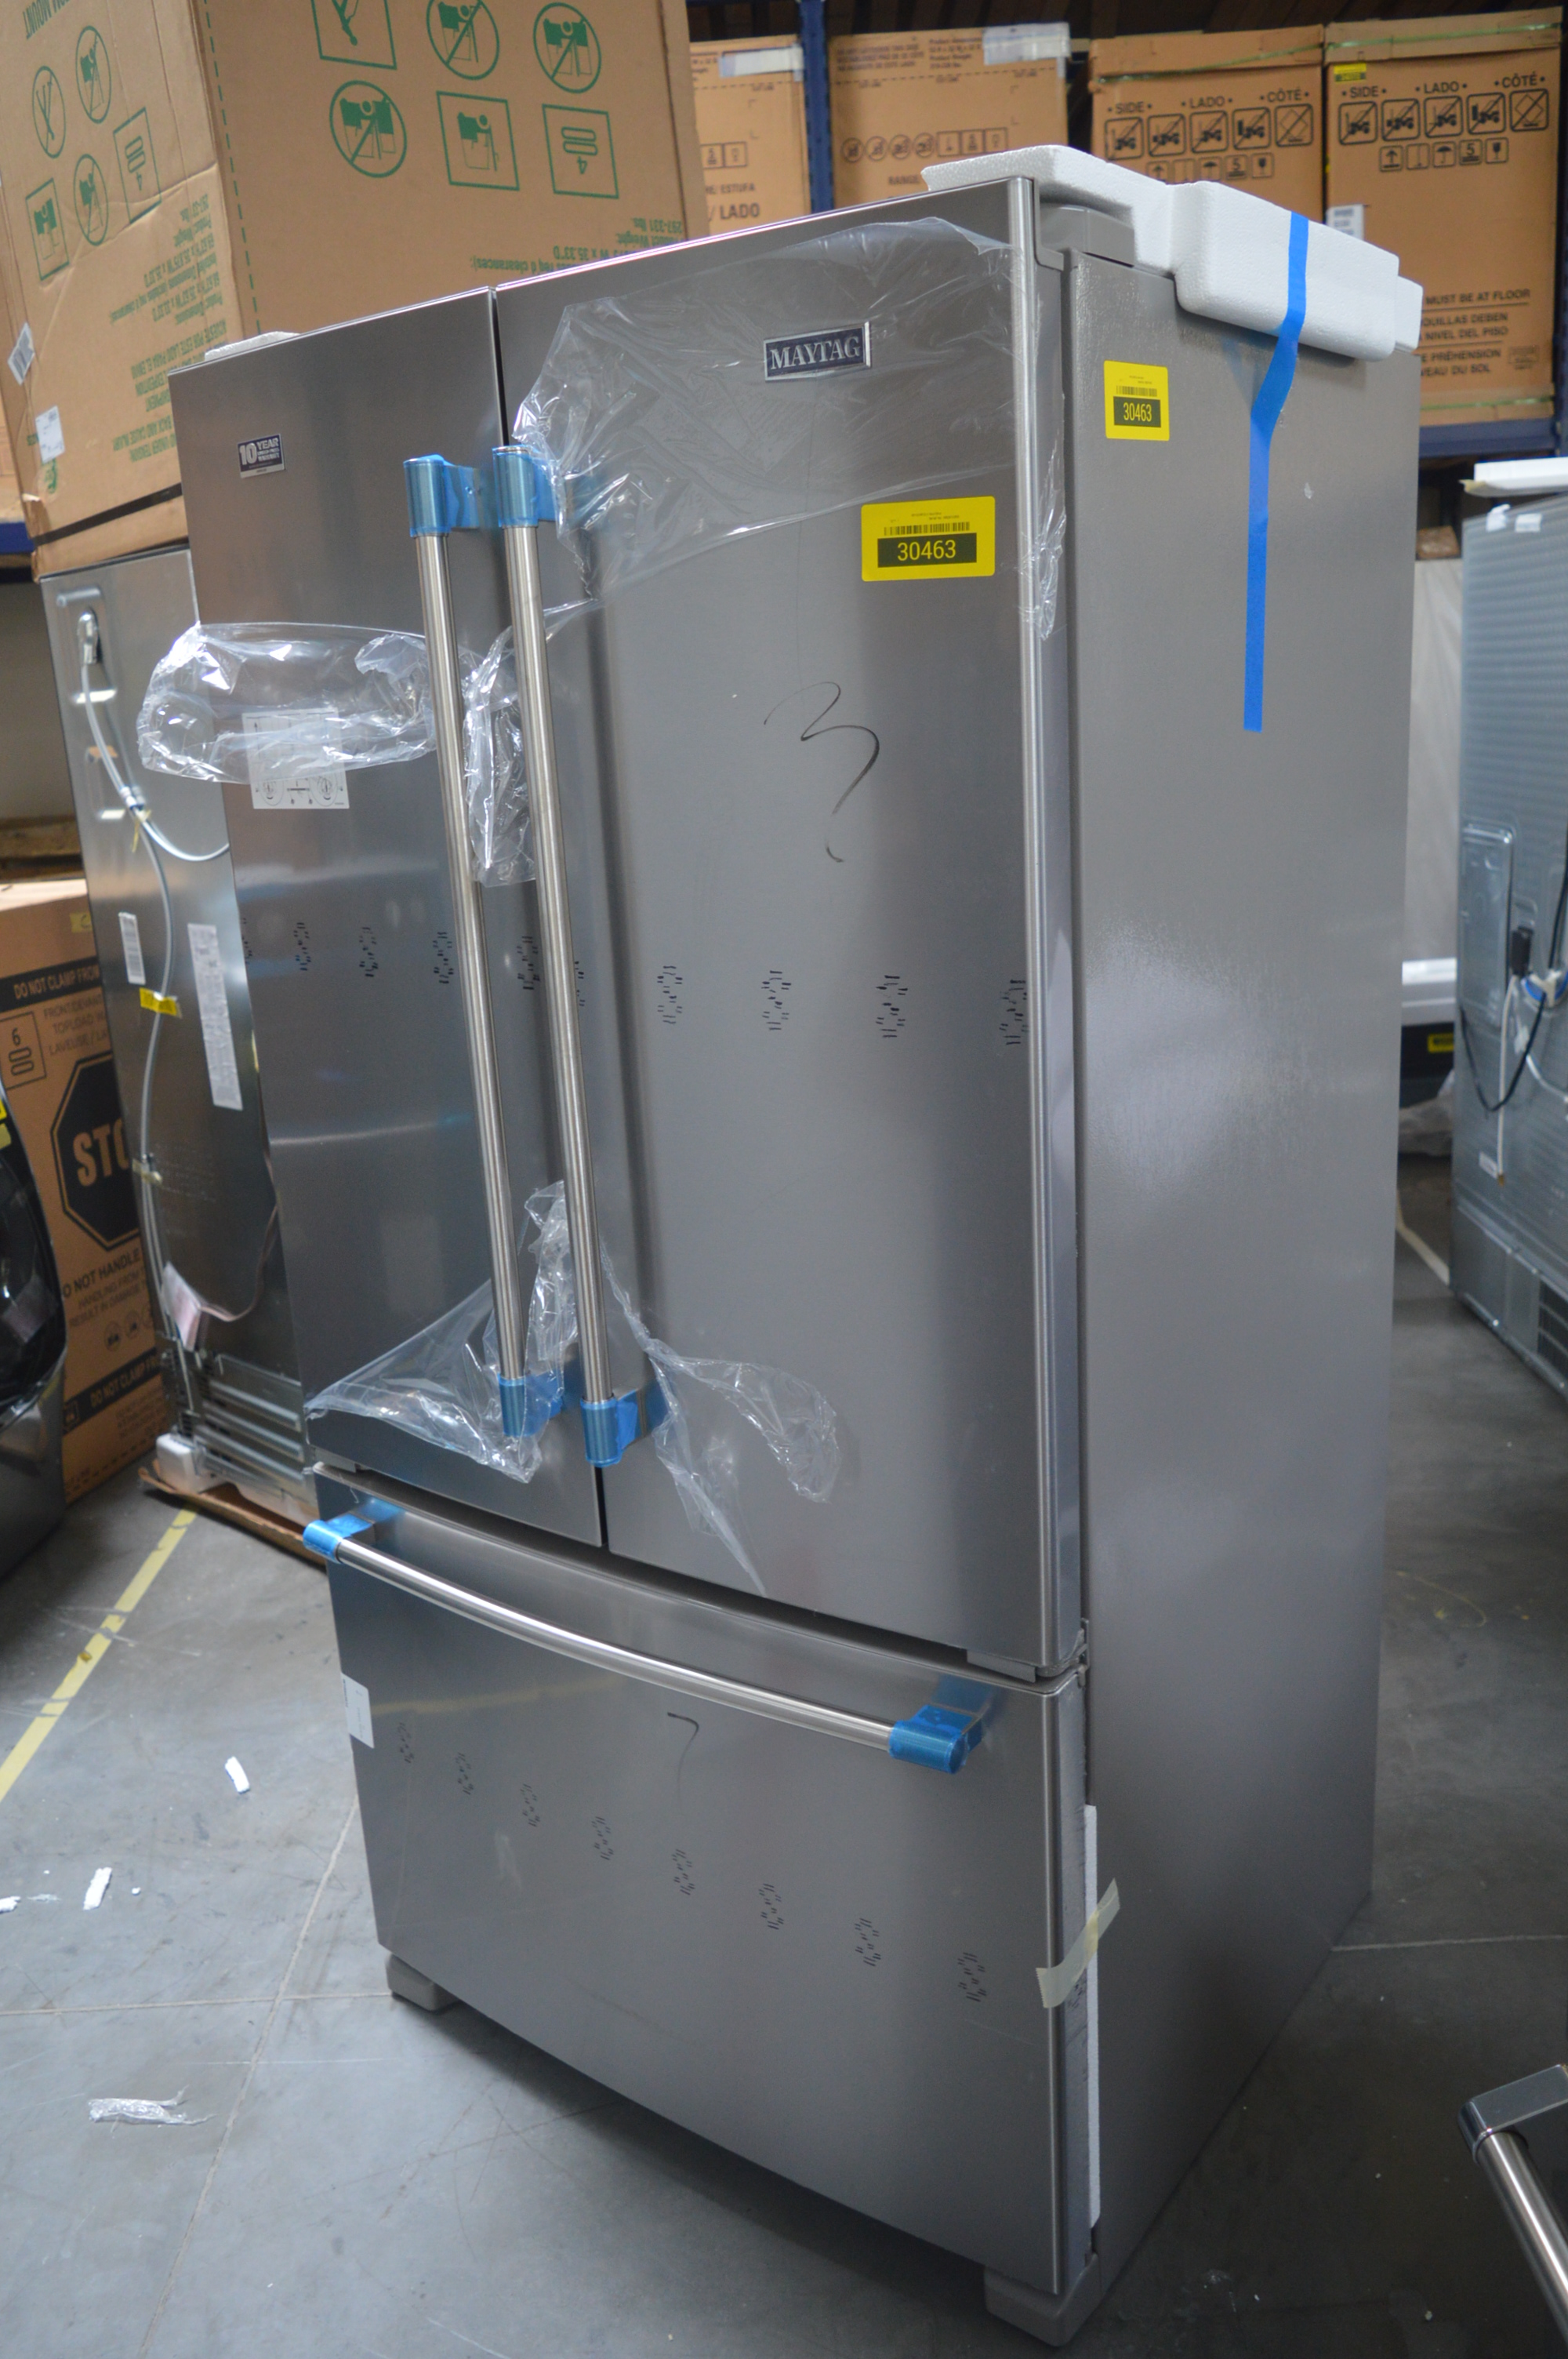 Maytag MFF2558FEZ French Door Refrigerator Stainless